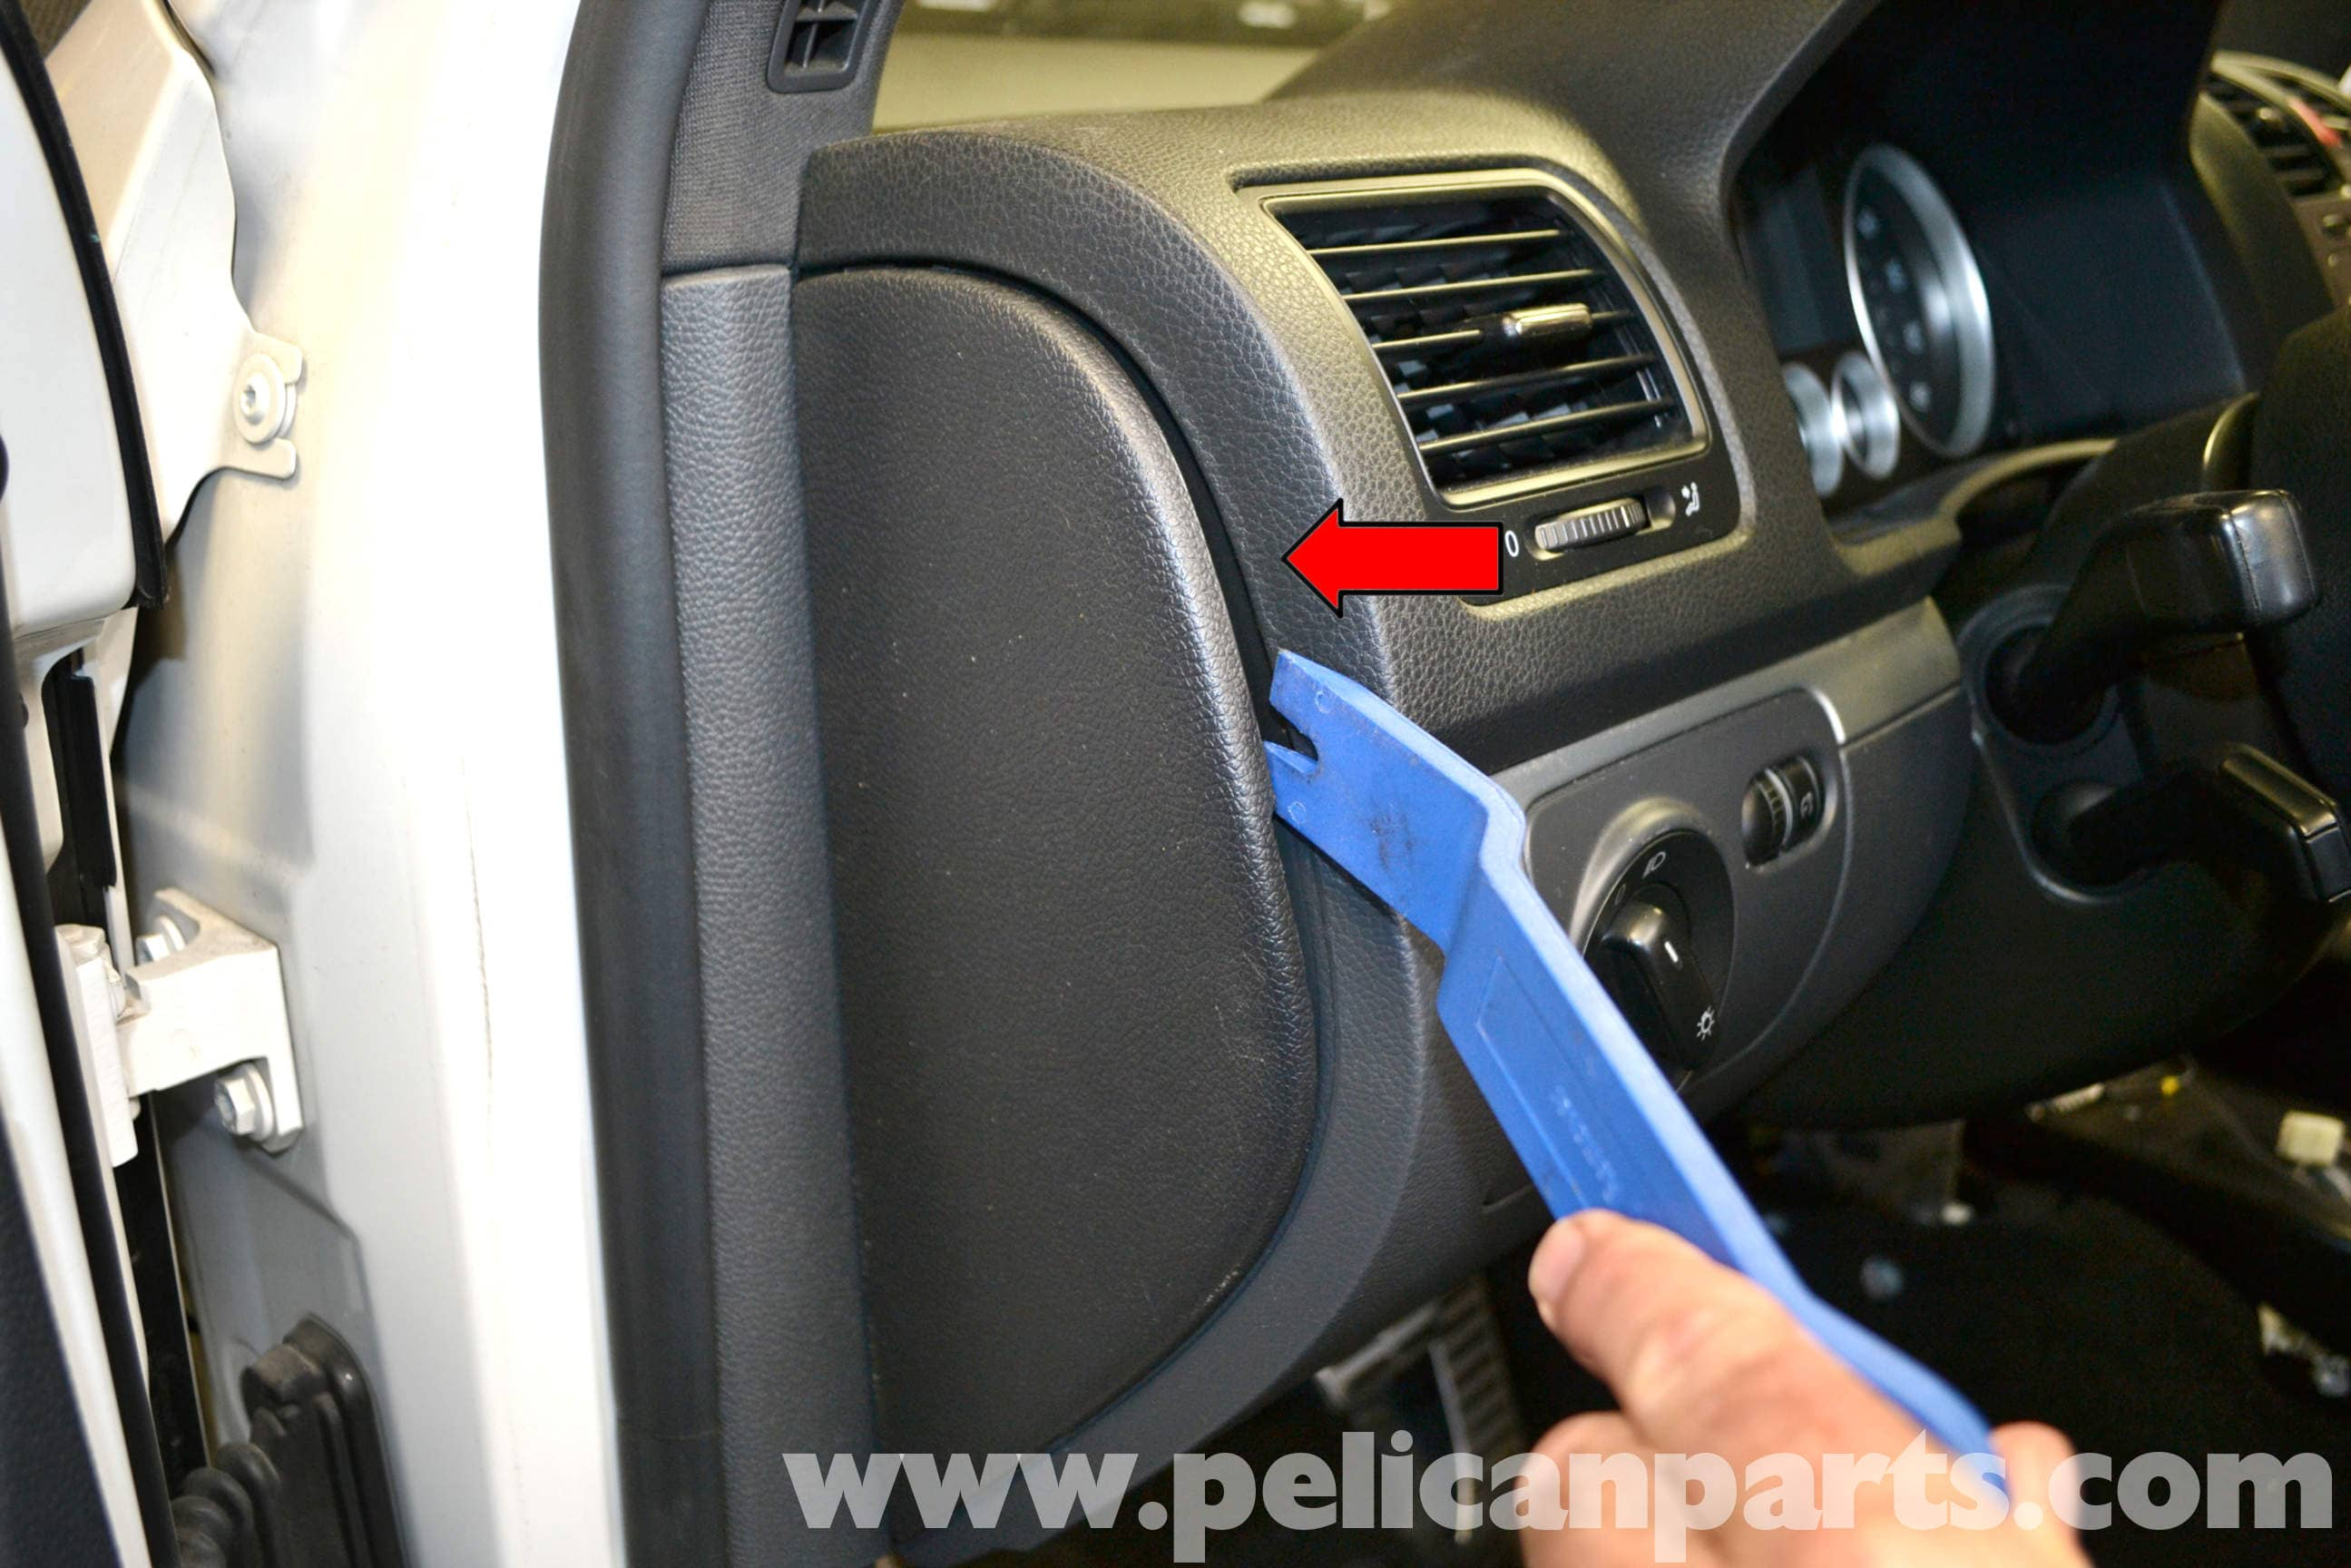 remove interior car door trim www indiepedia org 2002 Dodge Caravan Fuse  Box Location 2006 Dodge